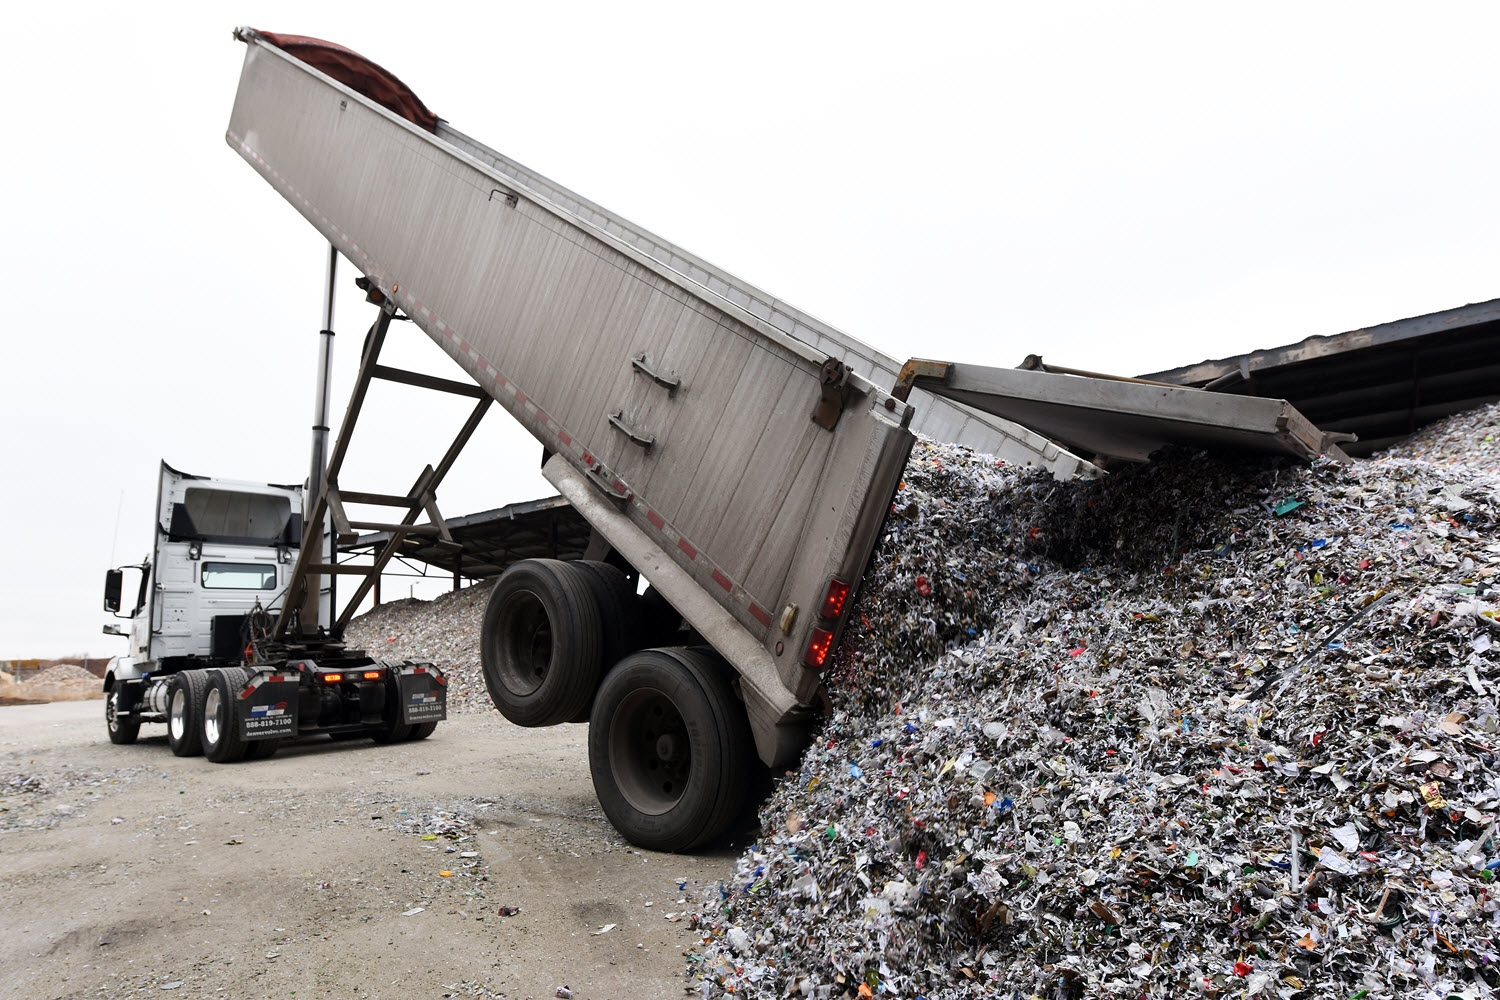 The Silica Chronicles: Glass Recycling Foundation A New Way To Raise Funds To Enhance Recycling